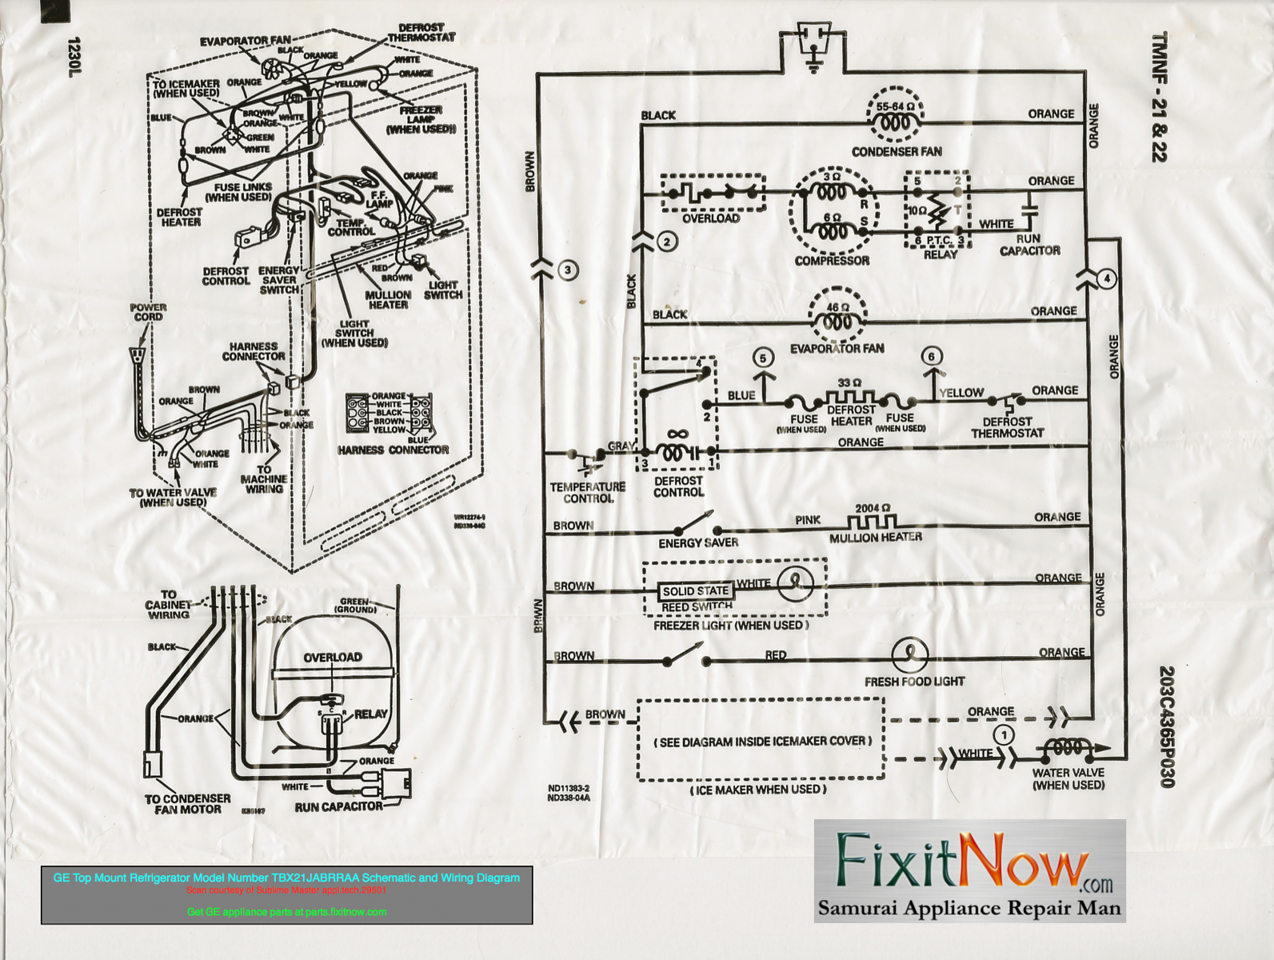 4904374061_e8eb3df6c6_o X2 wiring diagrams and schematics appliantology temperature control wiring diagram at cita.asia